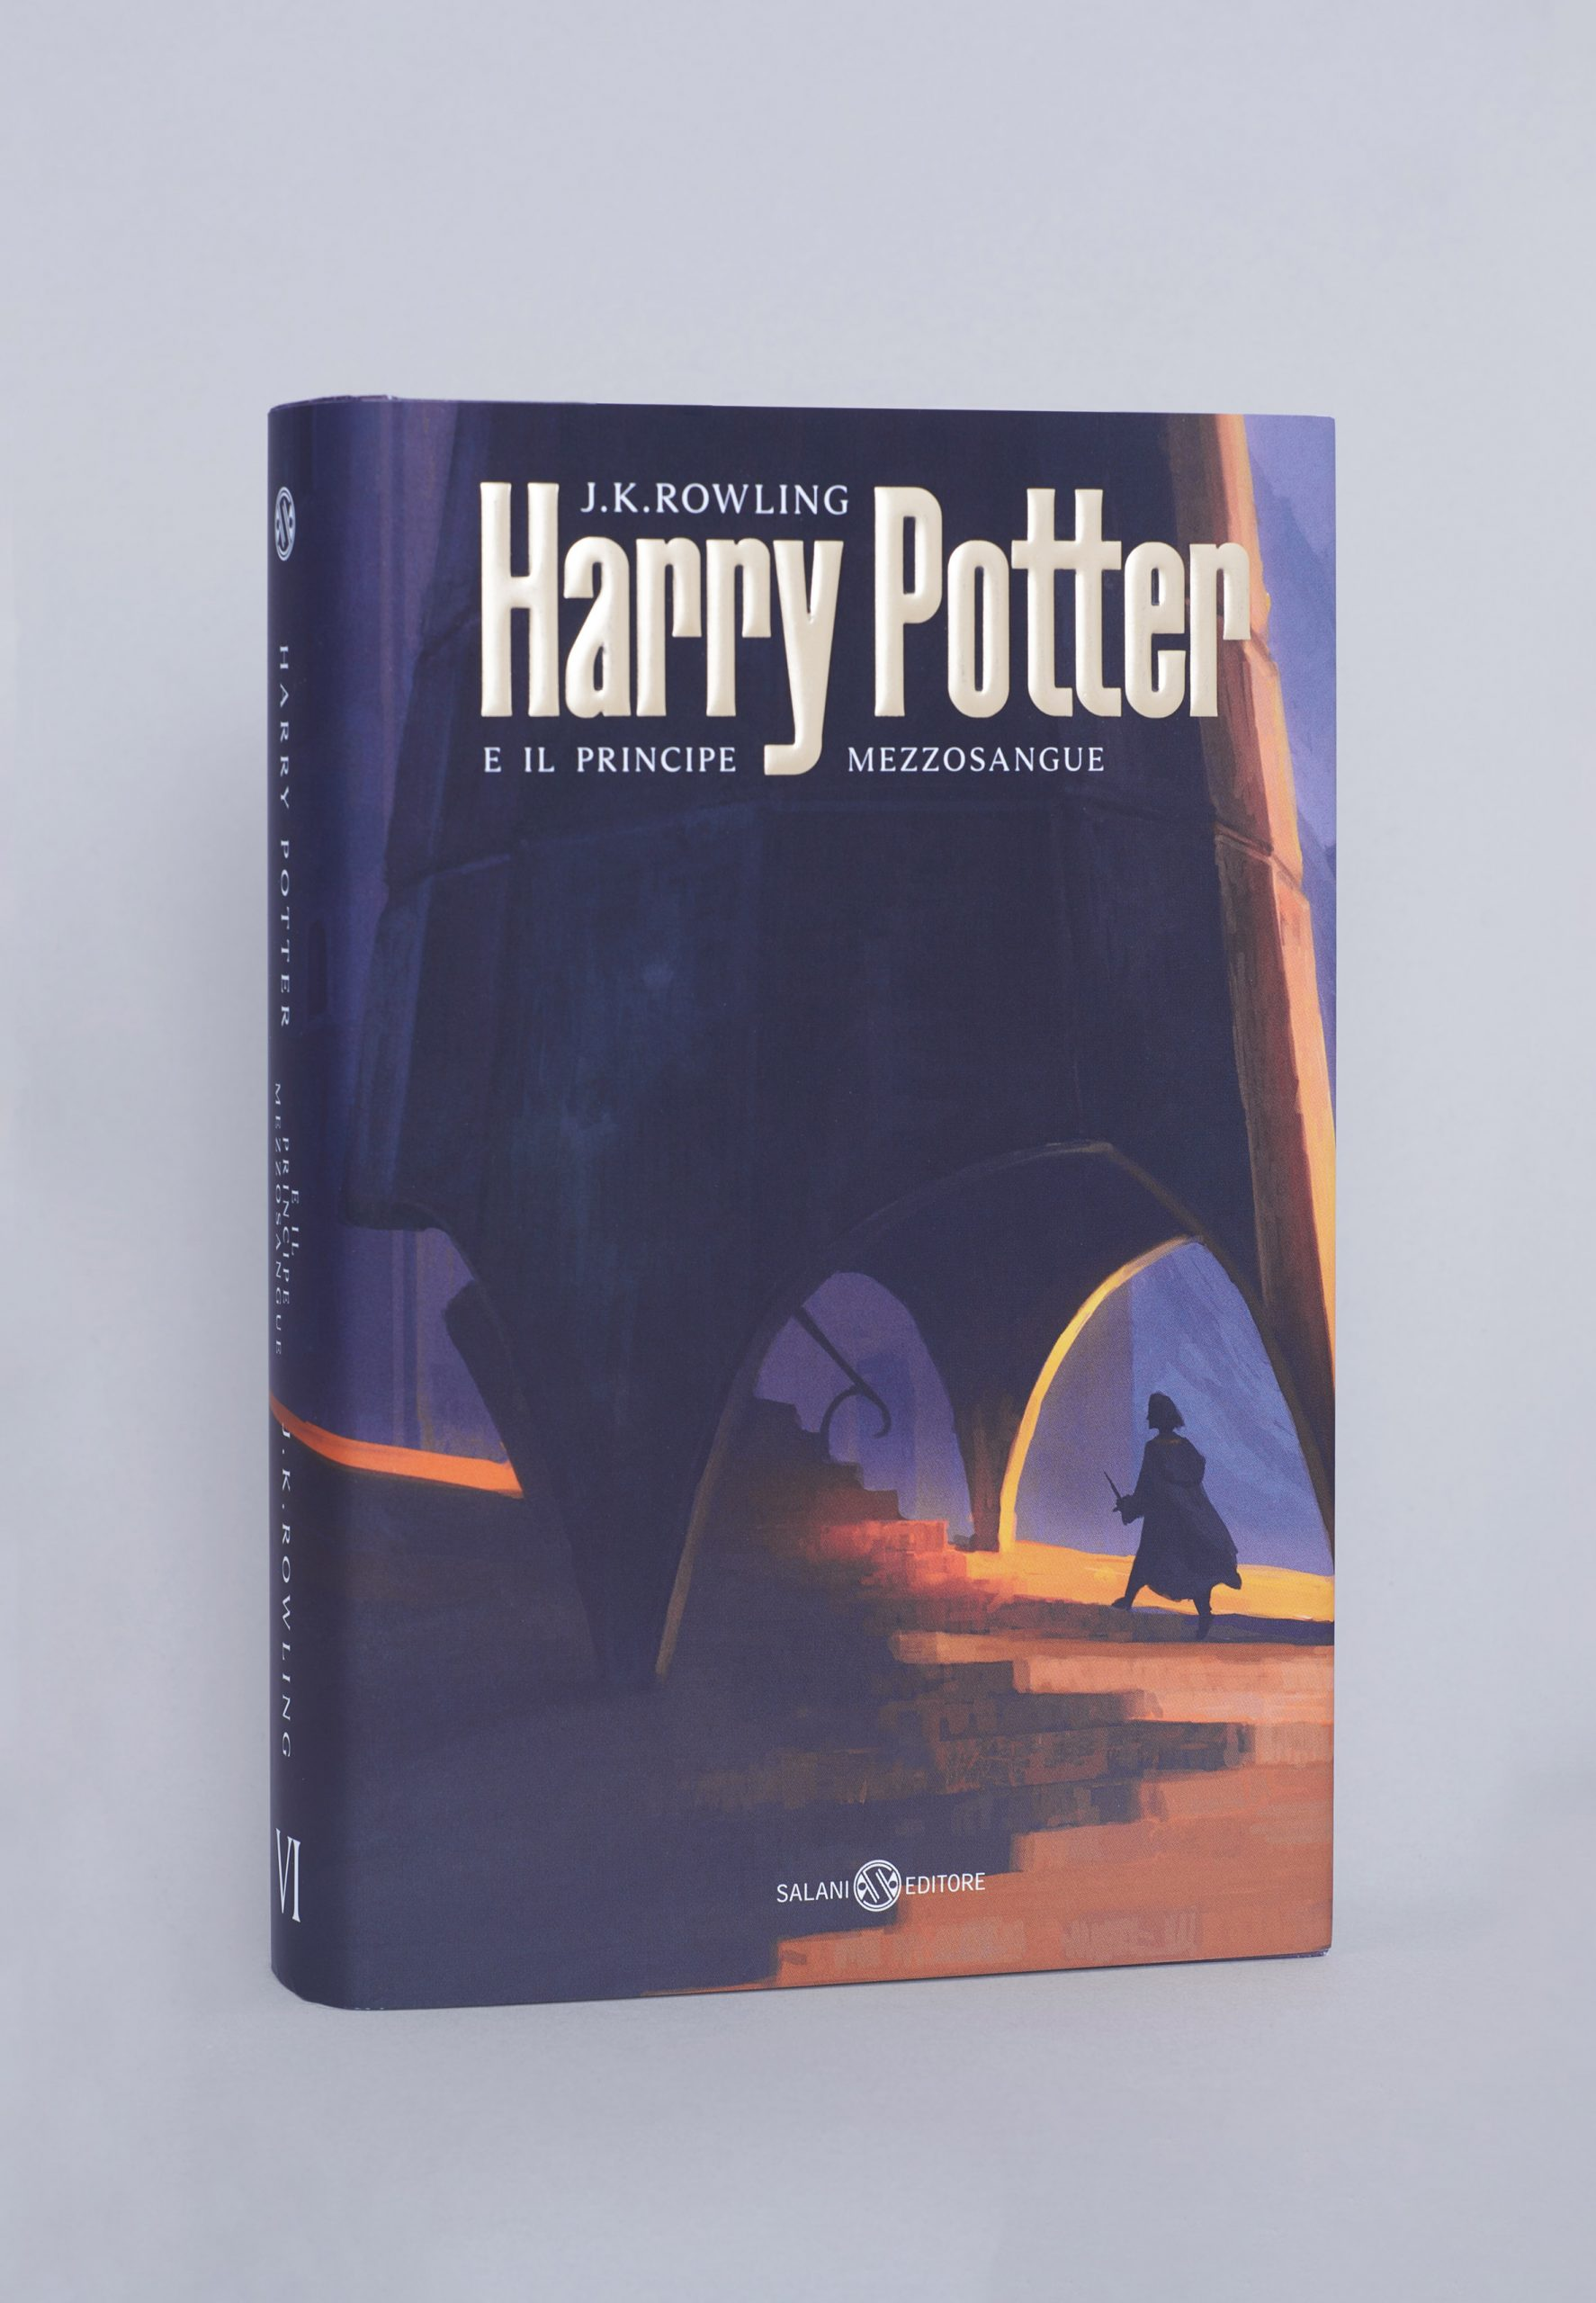 Italian cover of the Half-Blood Prince